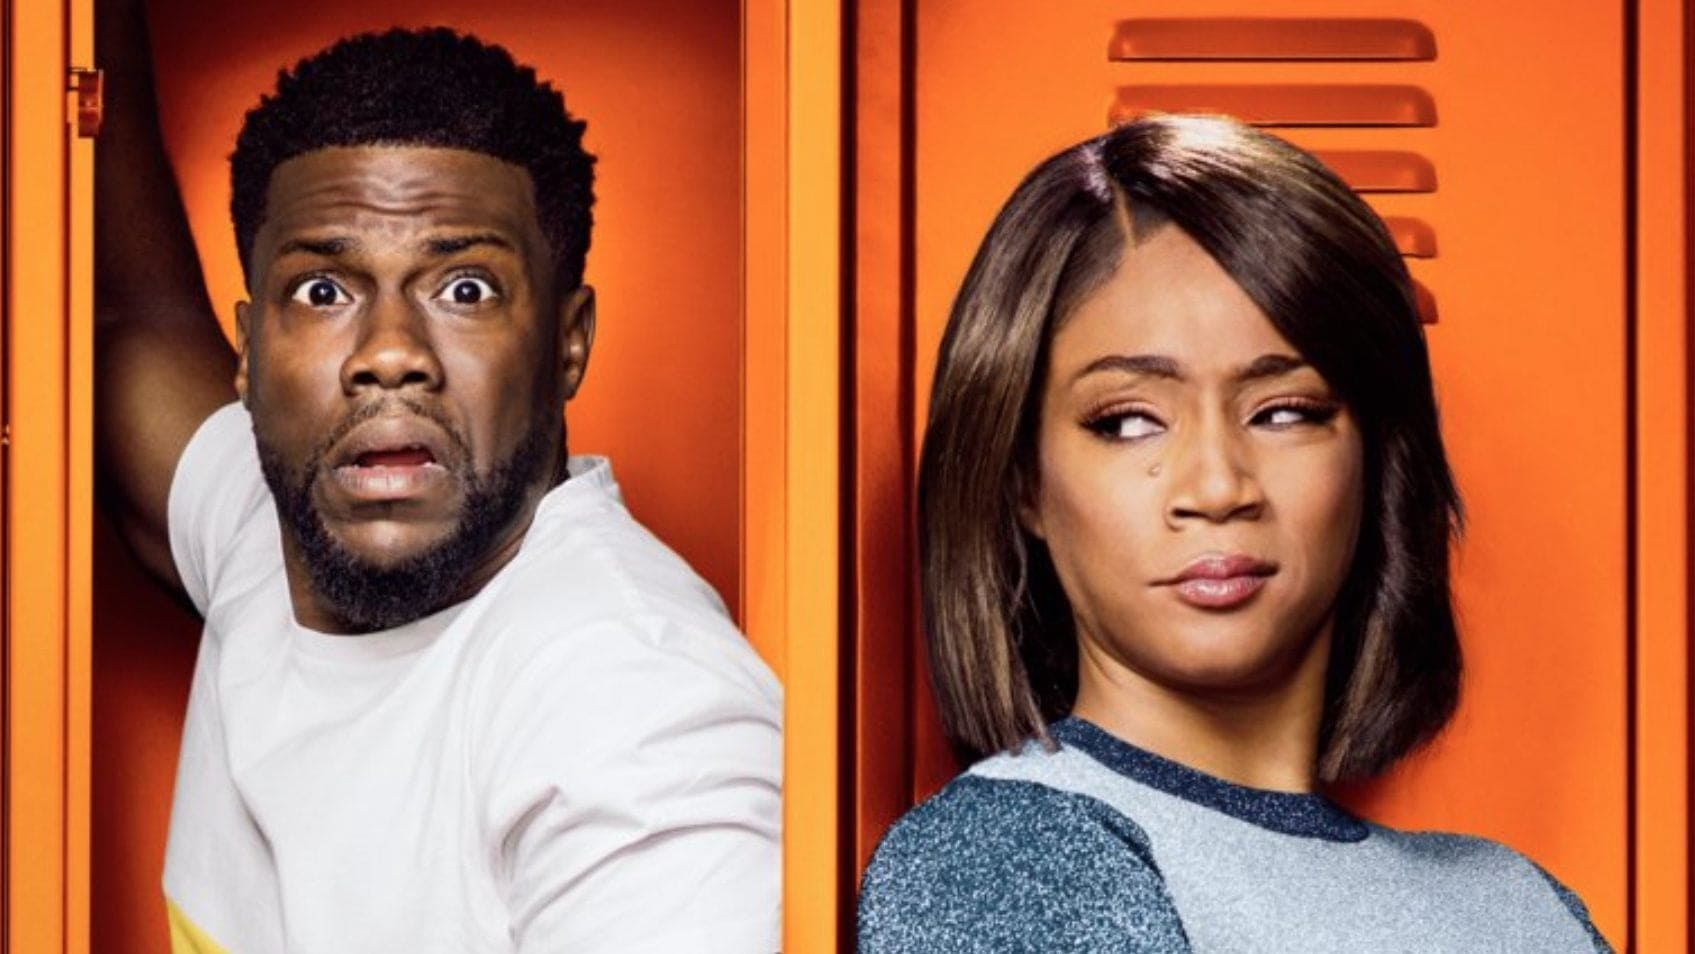 'Night School' Trailer: Kevin Hart and Tiffany Haddish Head Back to Class